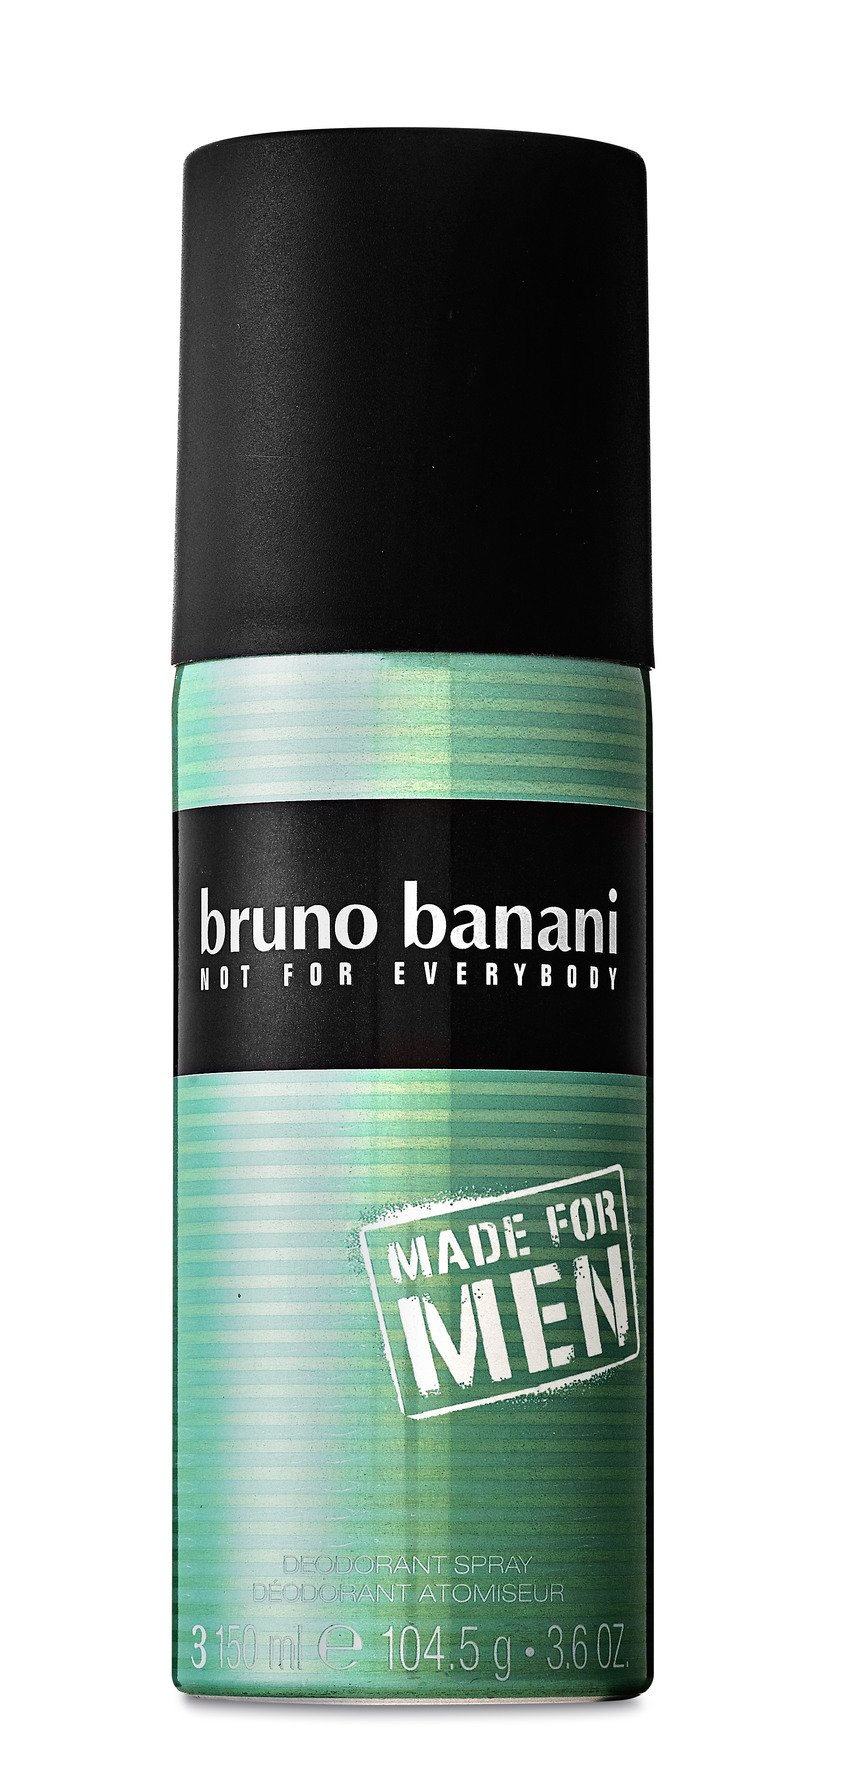 bruno banani made for men deo spray 150 ml. Black Bedroom Furniture Sets. Home Design Ideas